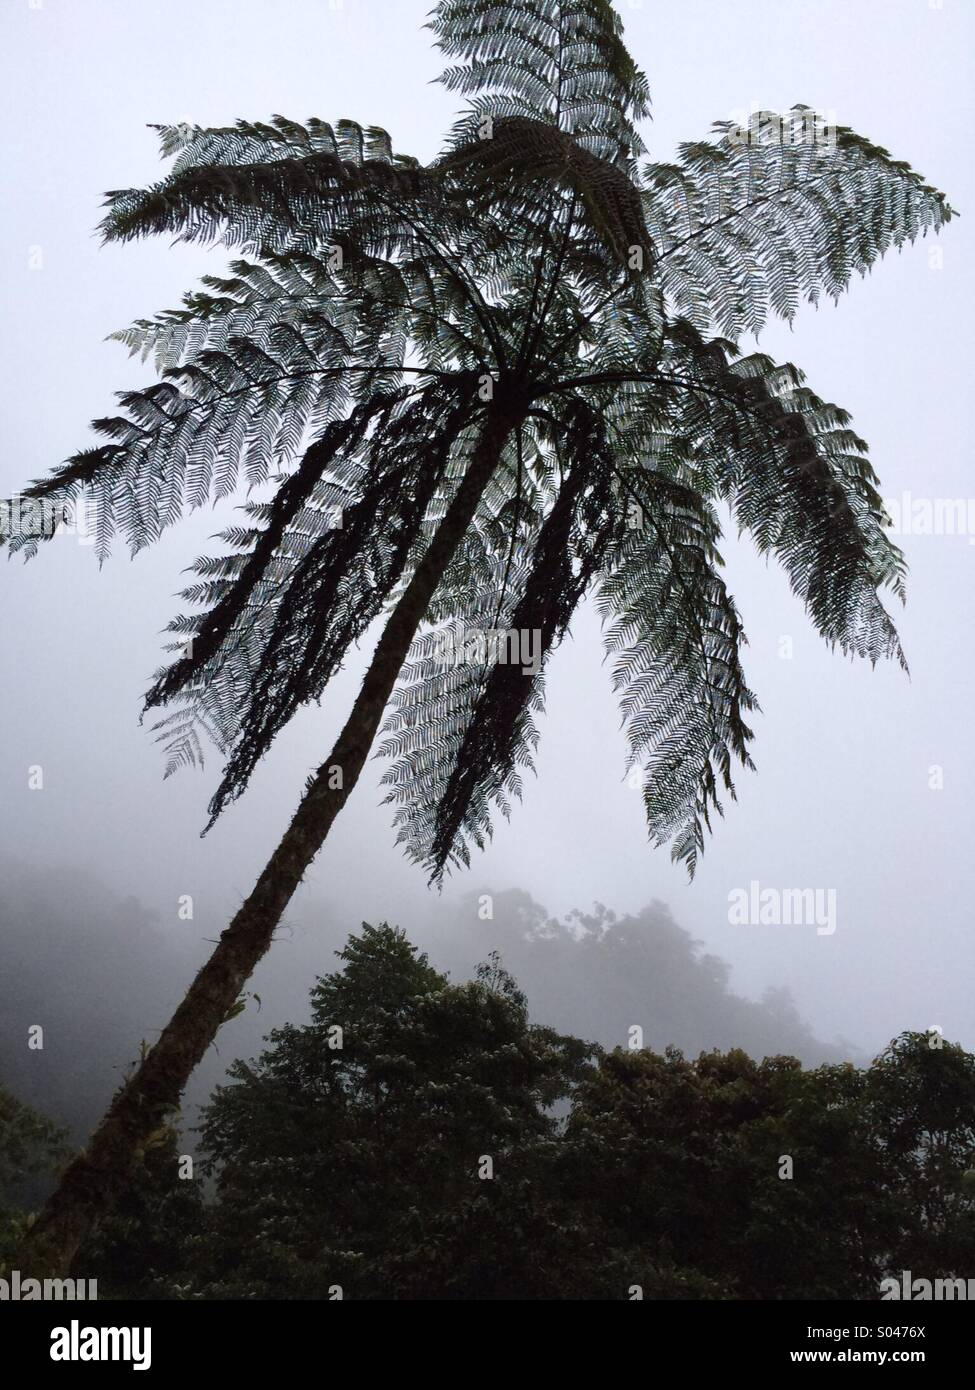 Tree Fern in mist, cloud forest, Andes mountains, Cosnipata Valley, Manu National Park, Peru - Stock Image